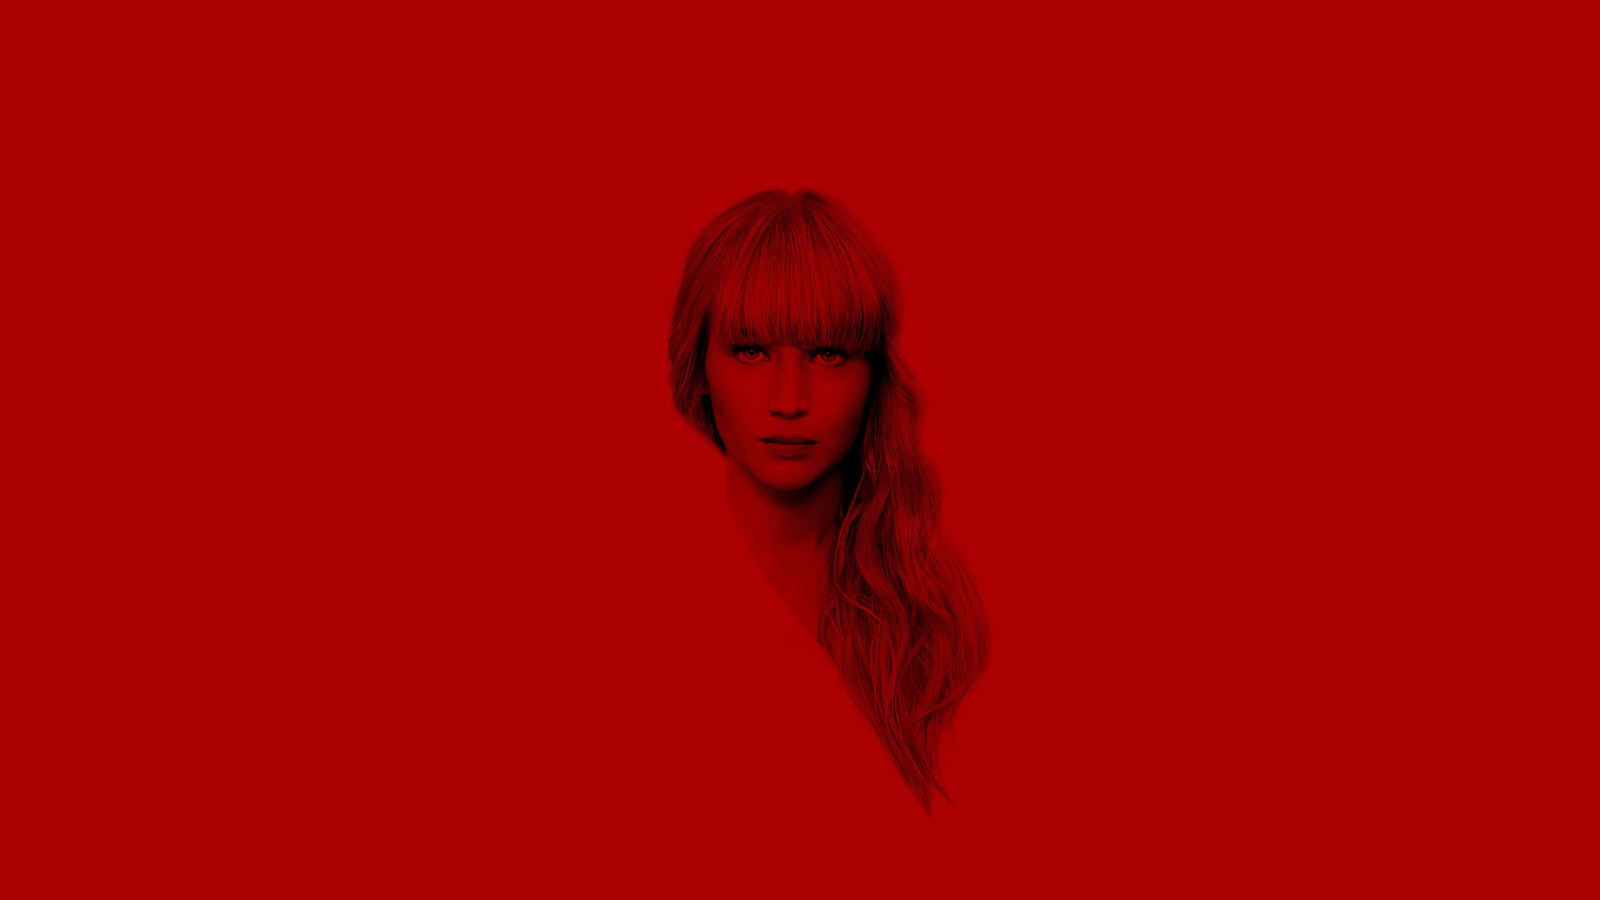 red-sparrow-2018-movie-8k-pm.jpg